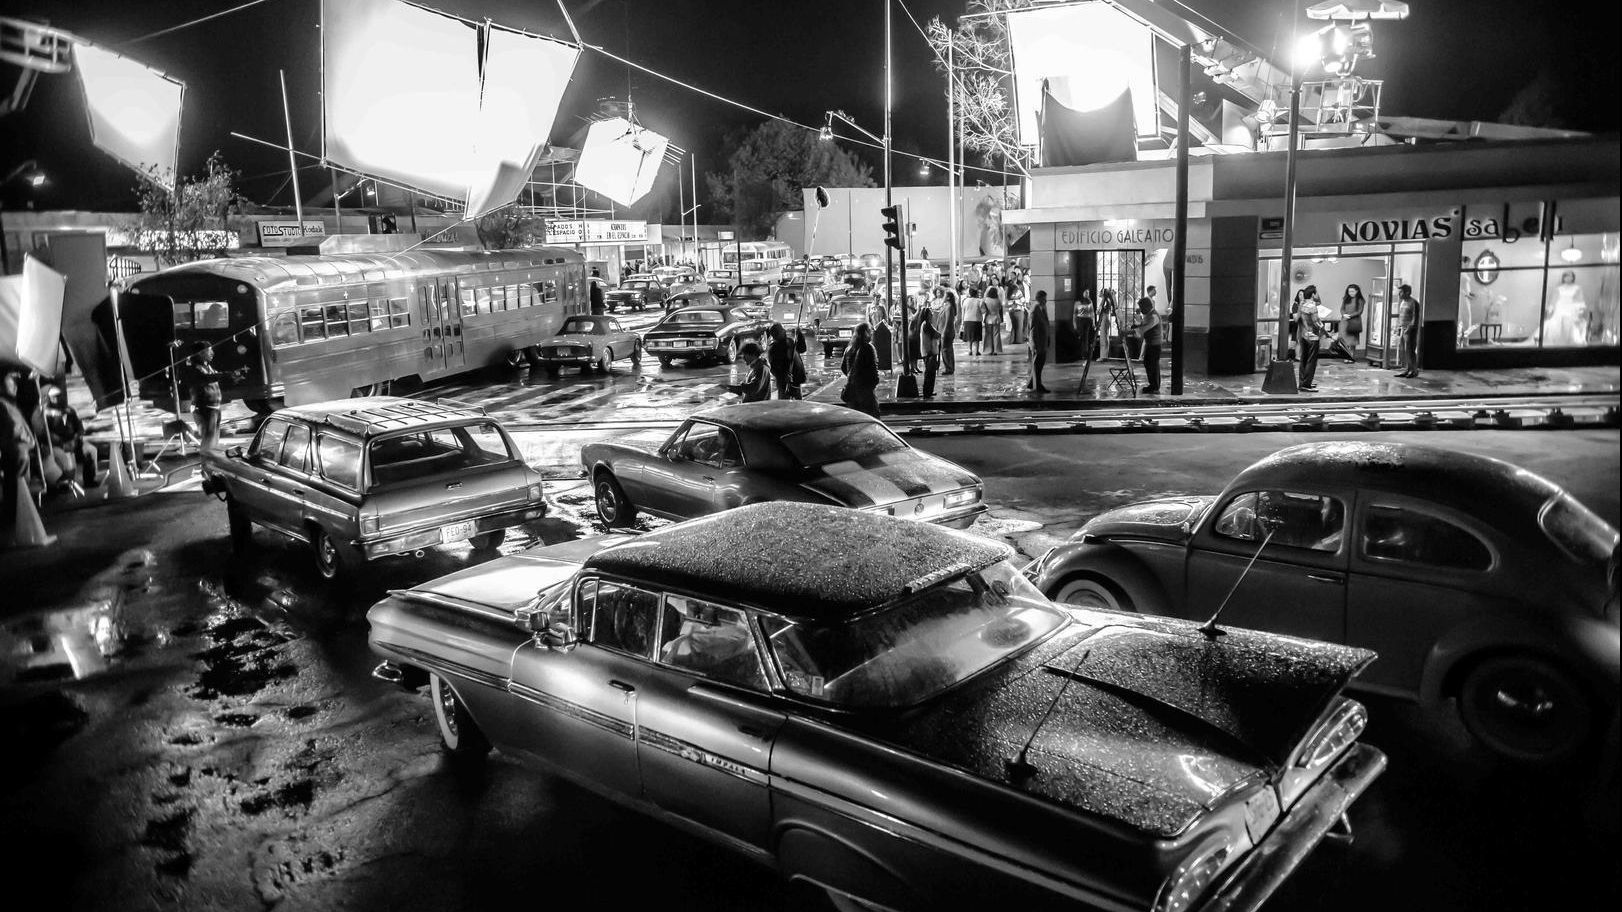 The 'Roma' effect: 5 films that reimagine great cities on screen